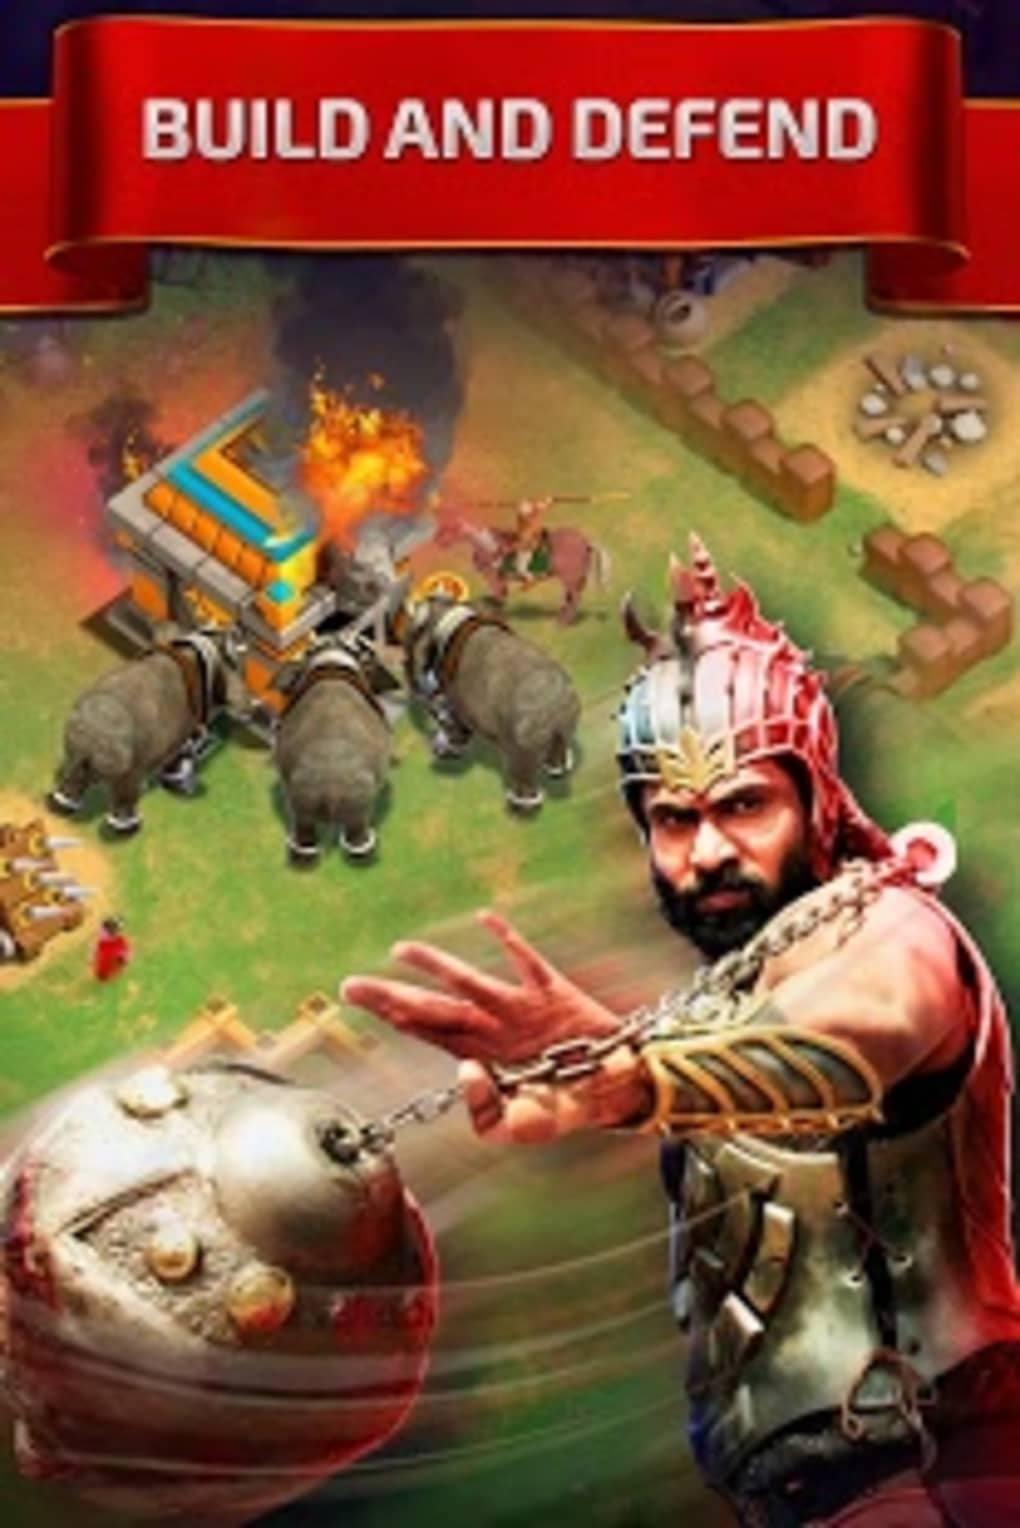 Baahubali: The Game (Official) for Android - Download